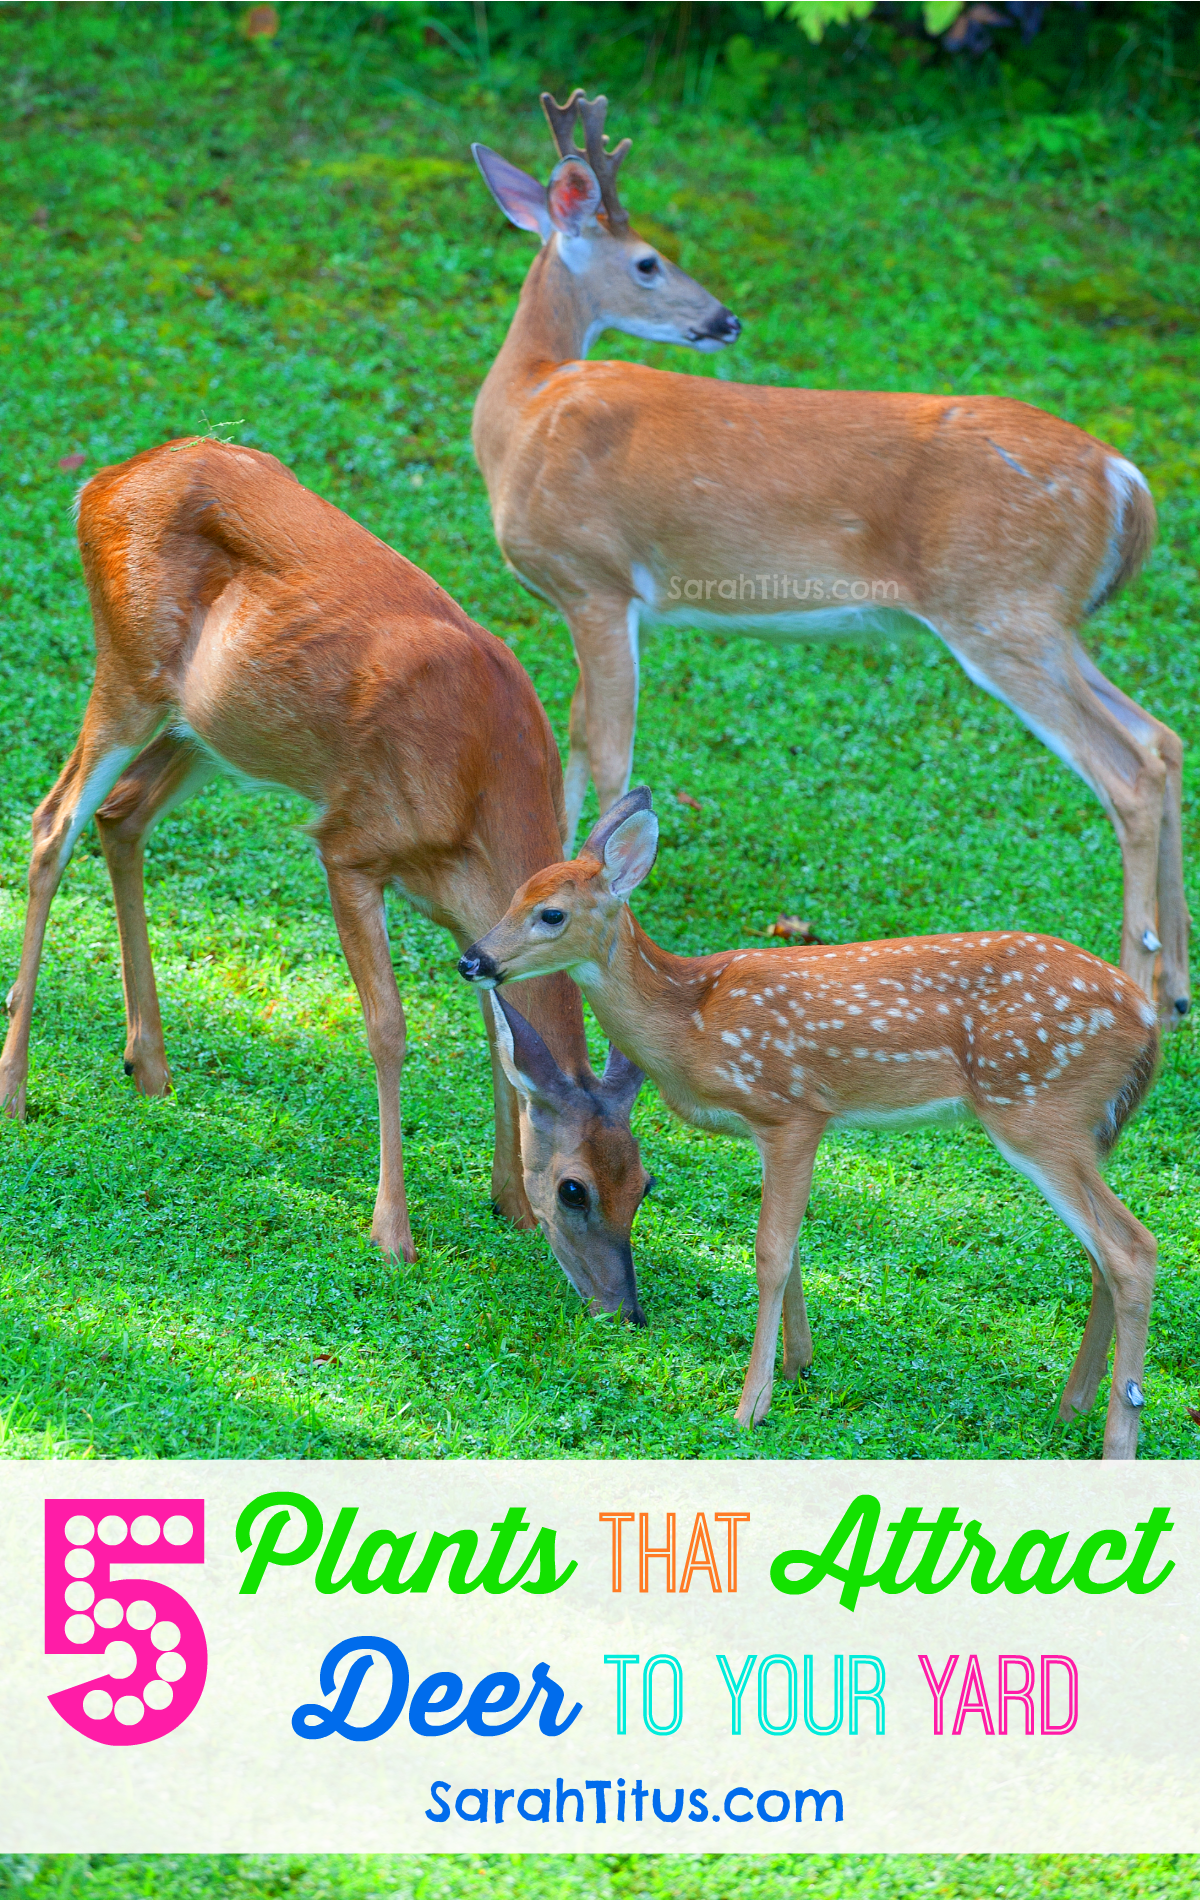 How do i keep deer out of my garden - 5 Plants That Attract Deer To Your Yard Most Gardeners Spend A Lot Of Time